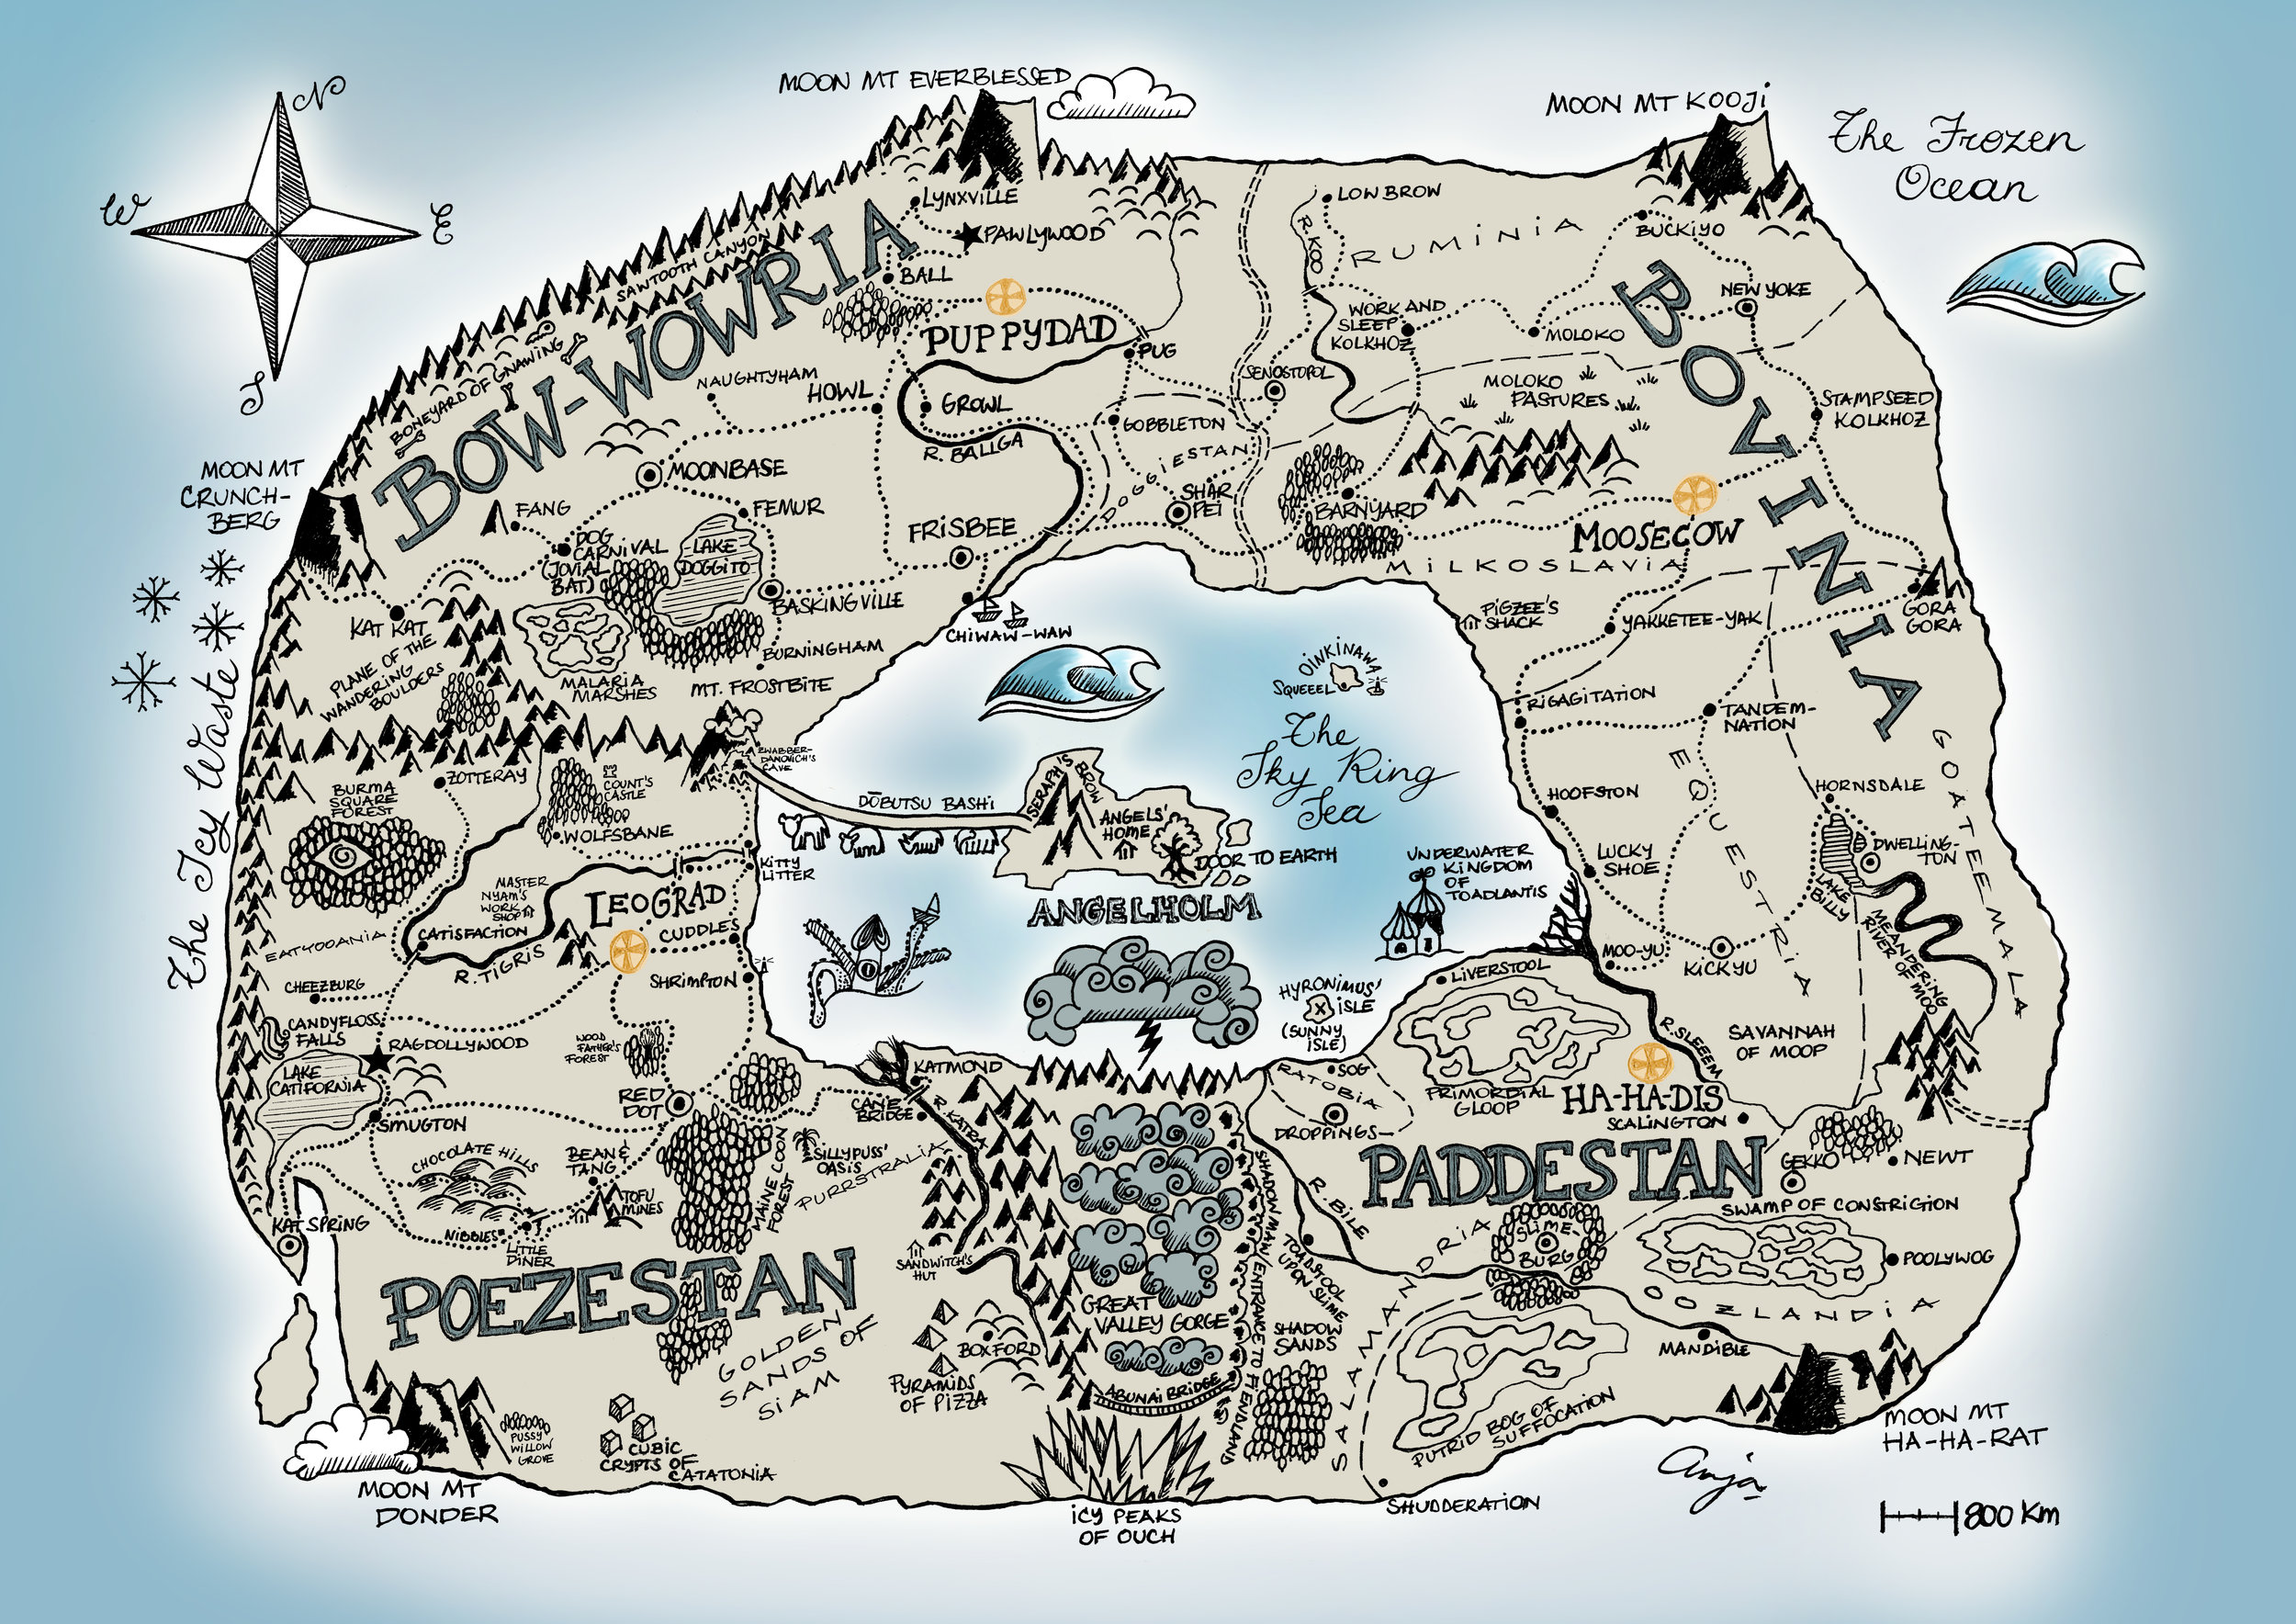 The contemporary map of Animus